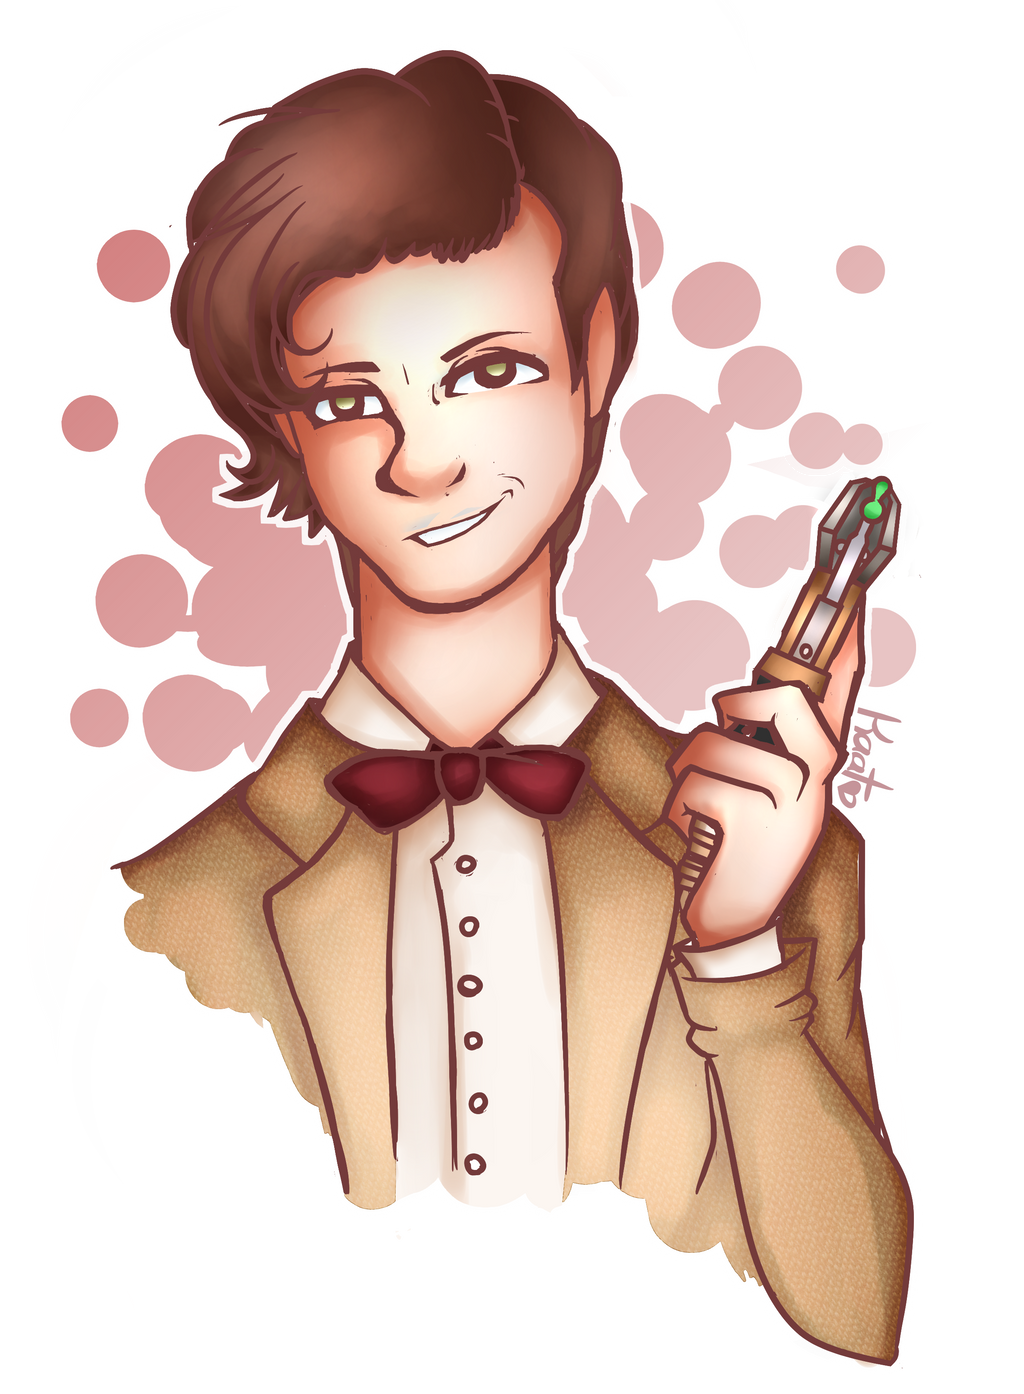 The Eleventh Doctor by Cheschire-Kaat